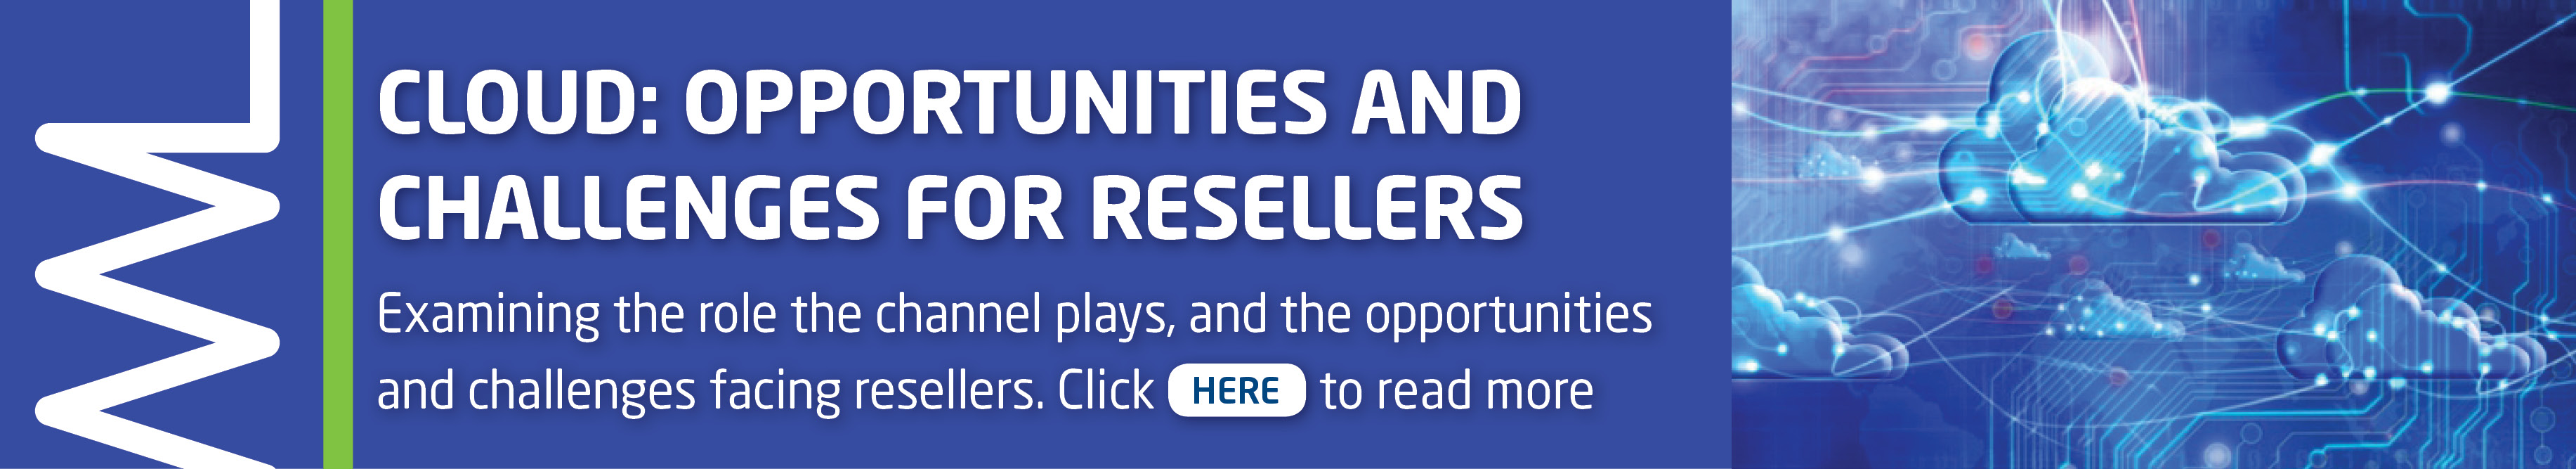 Cloud: Opportunities and challenges for resellers